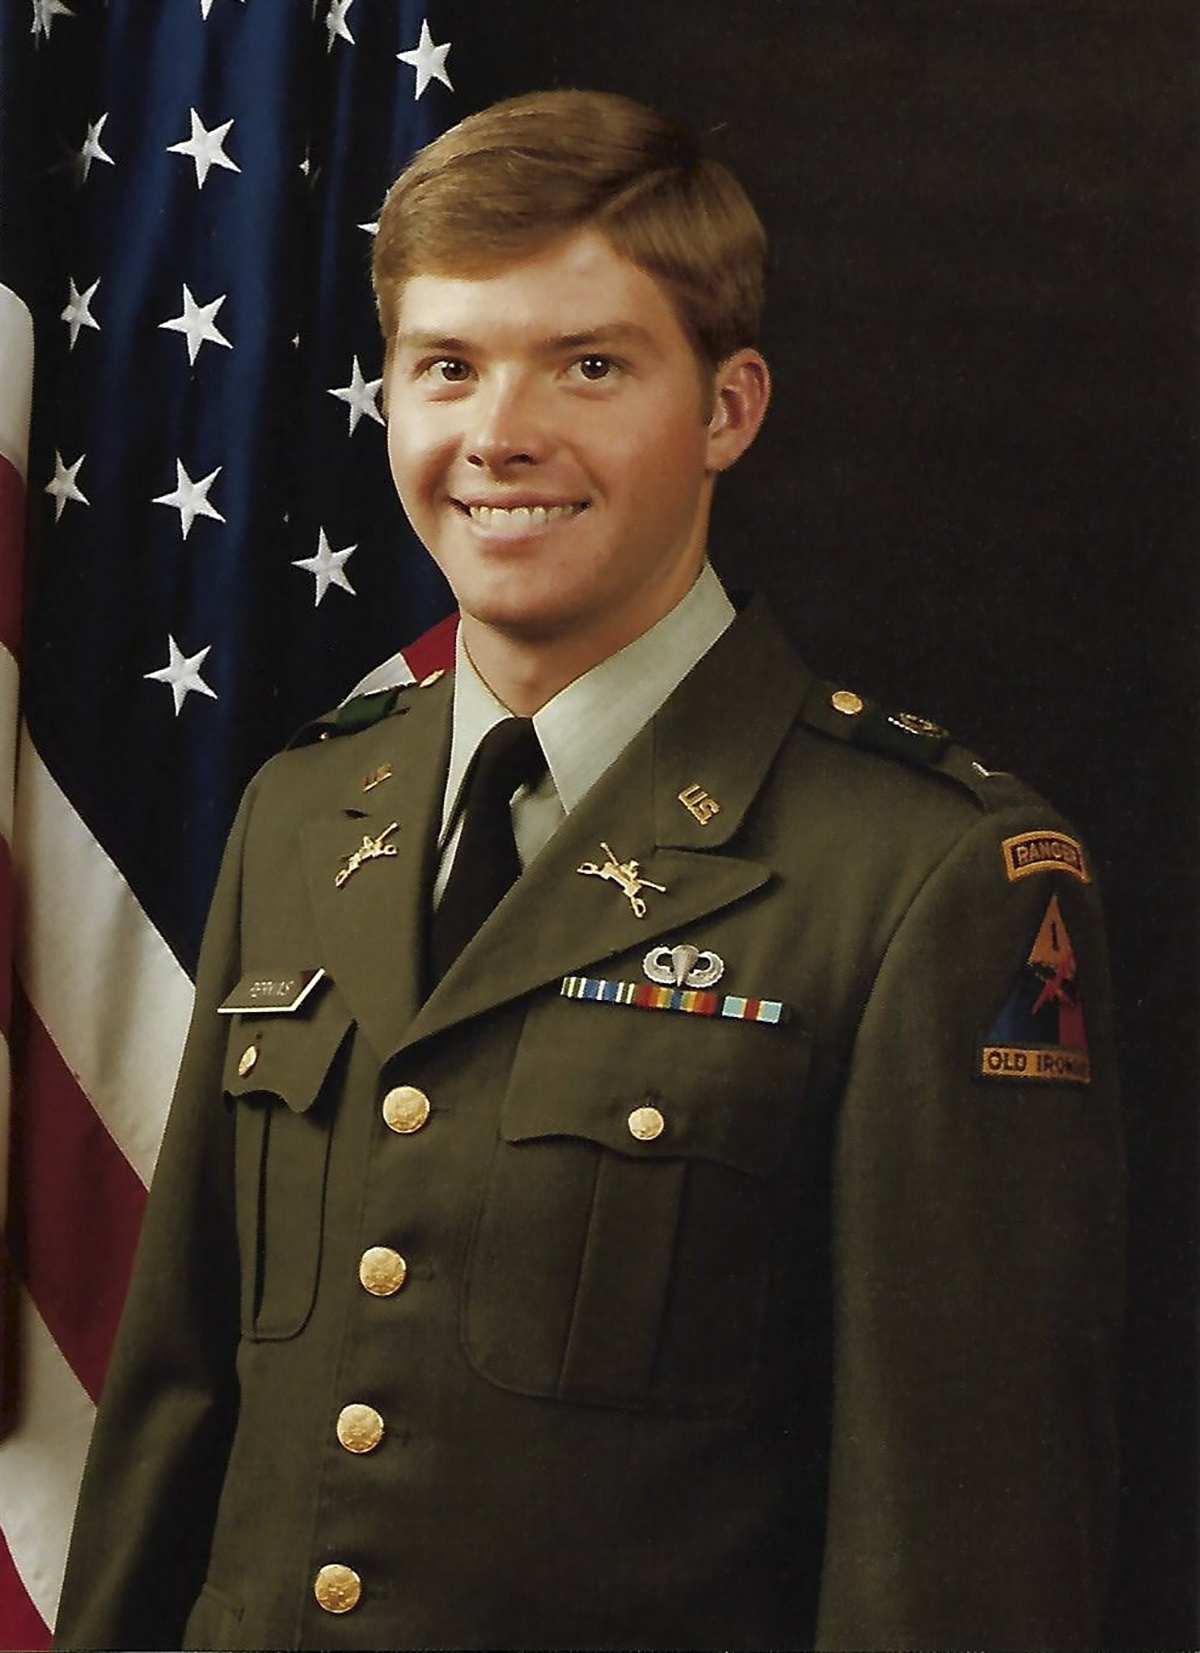 2LT David Perkins' unit photo in April 1981. (Army)